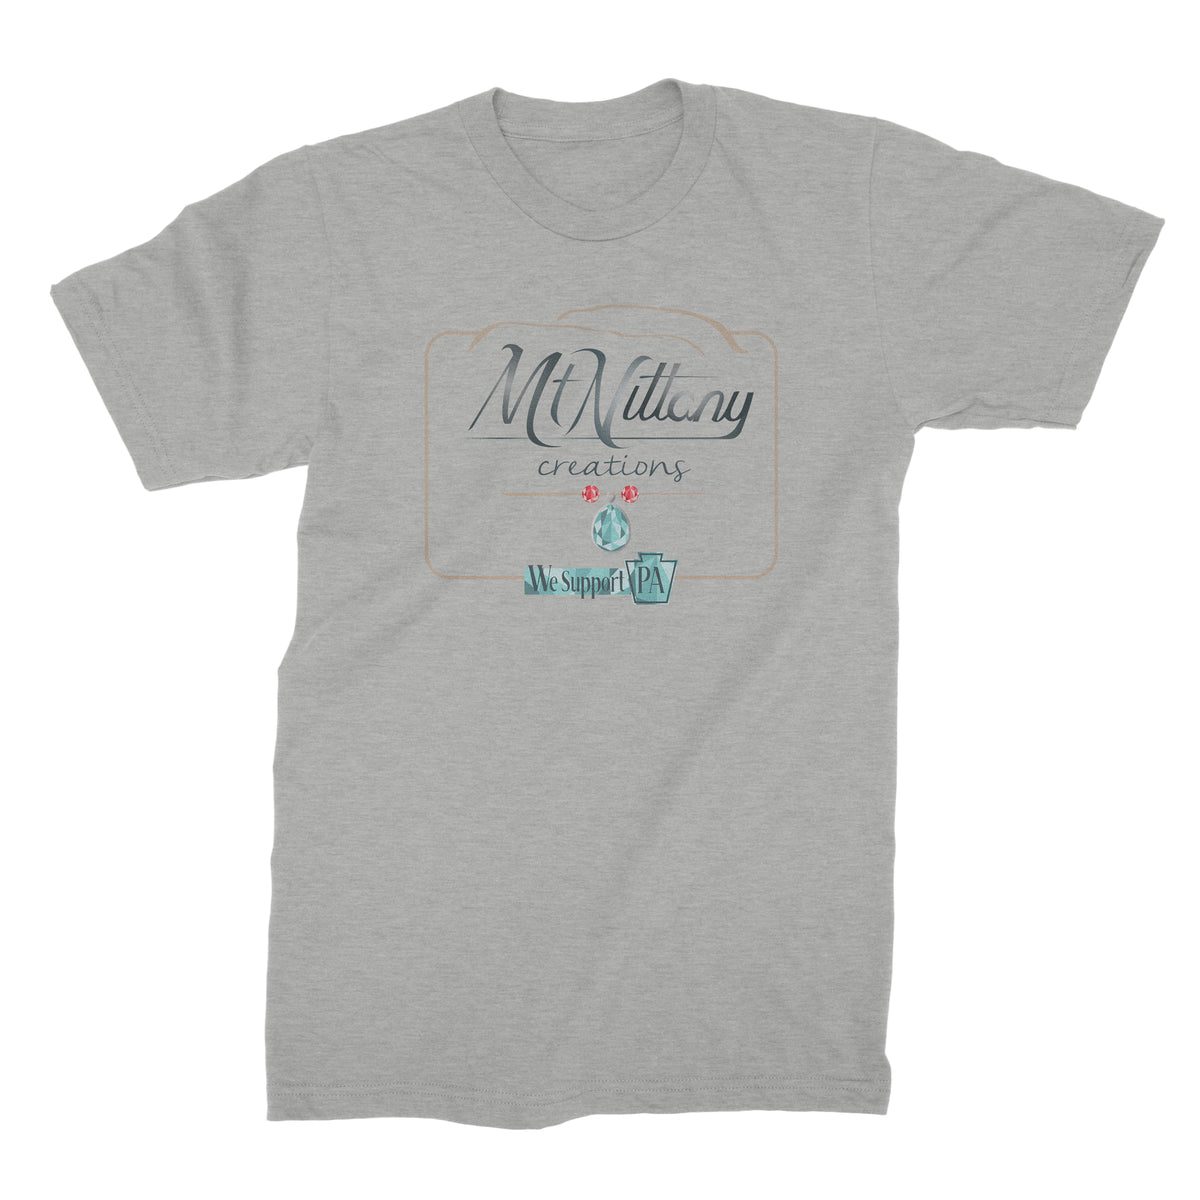 Mt Nittany Creations We Support PA T-Shirt